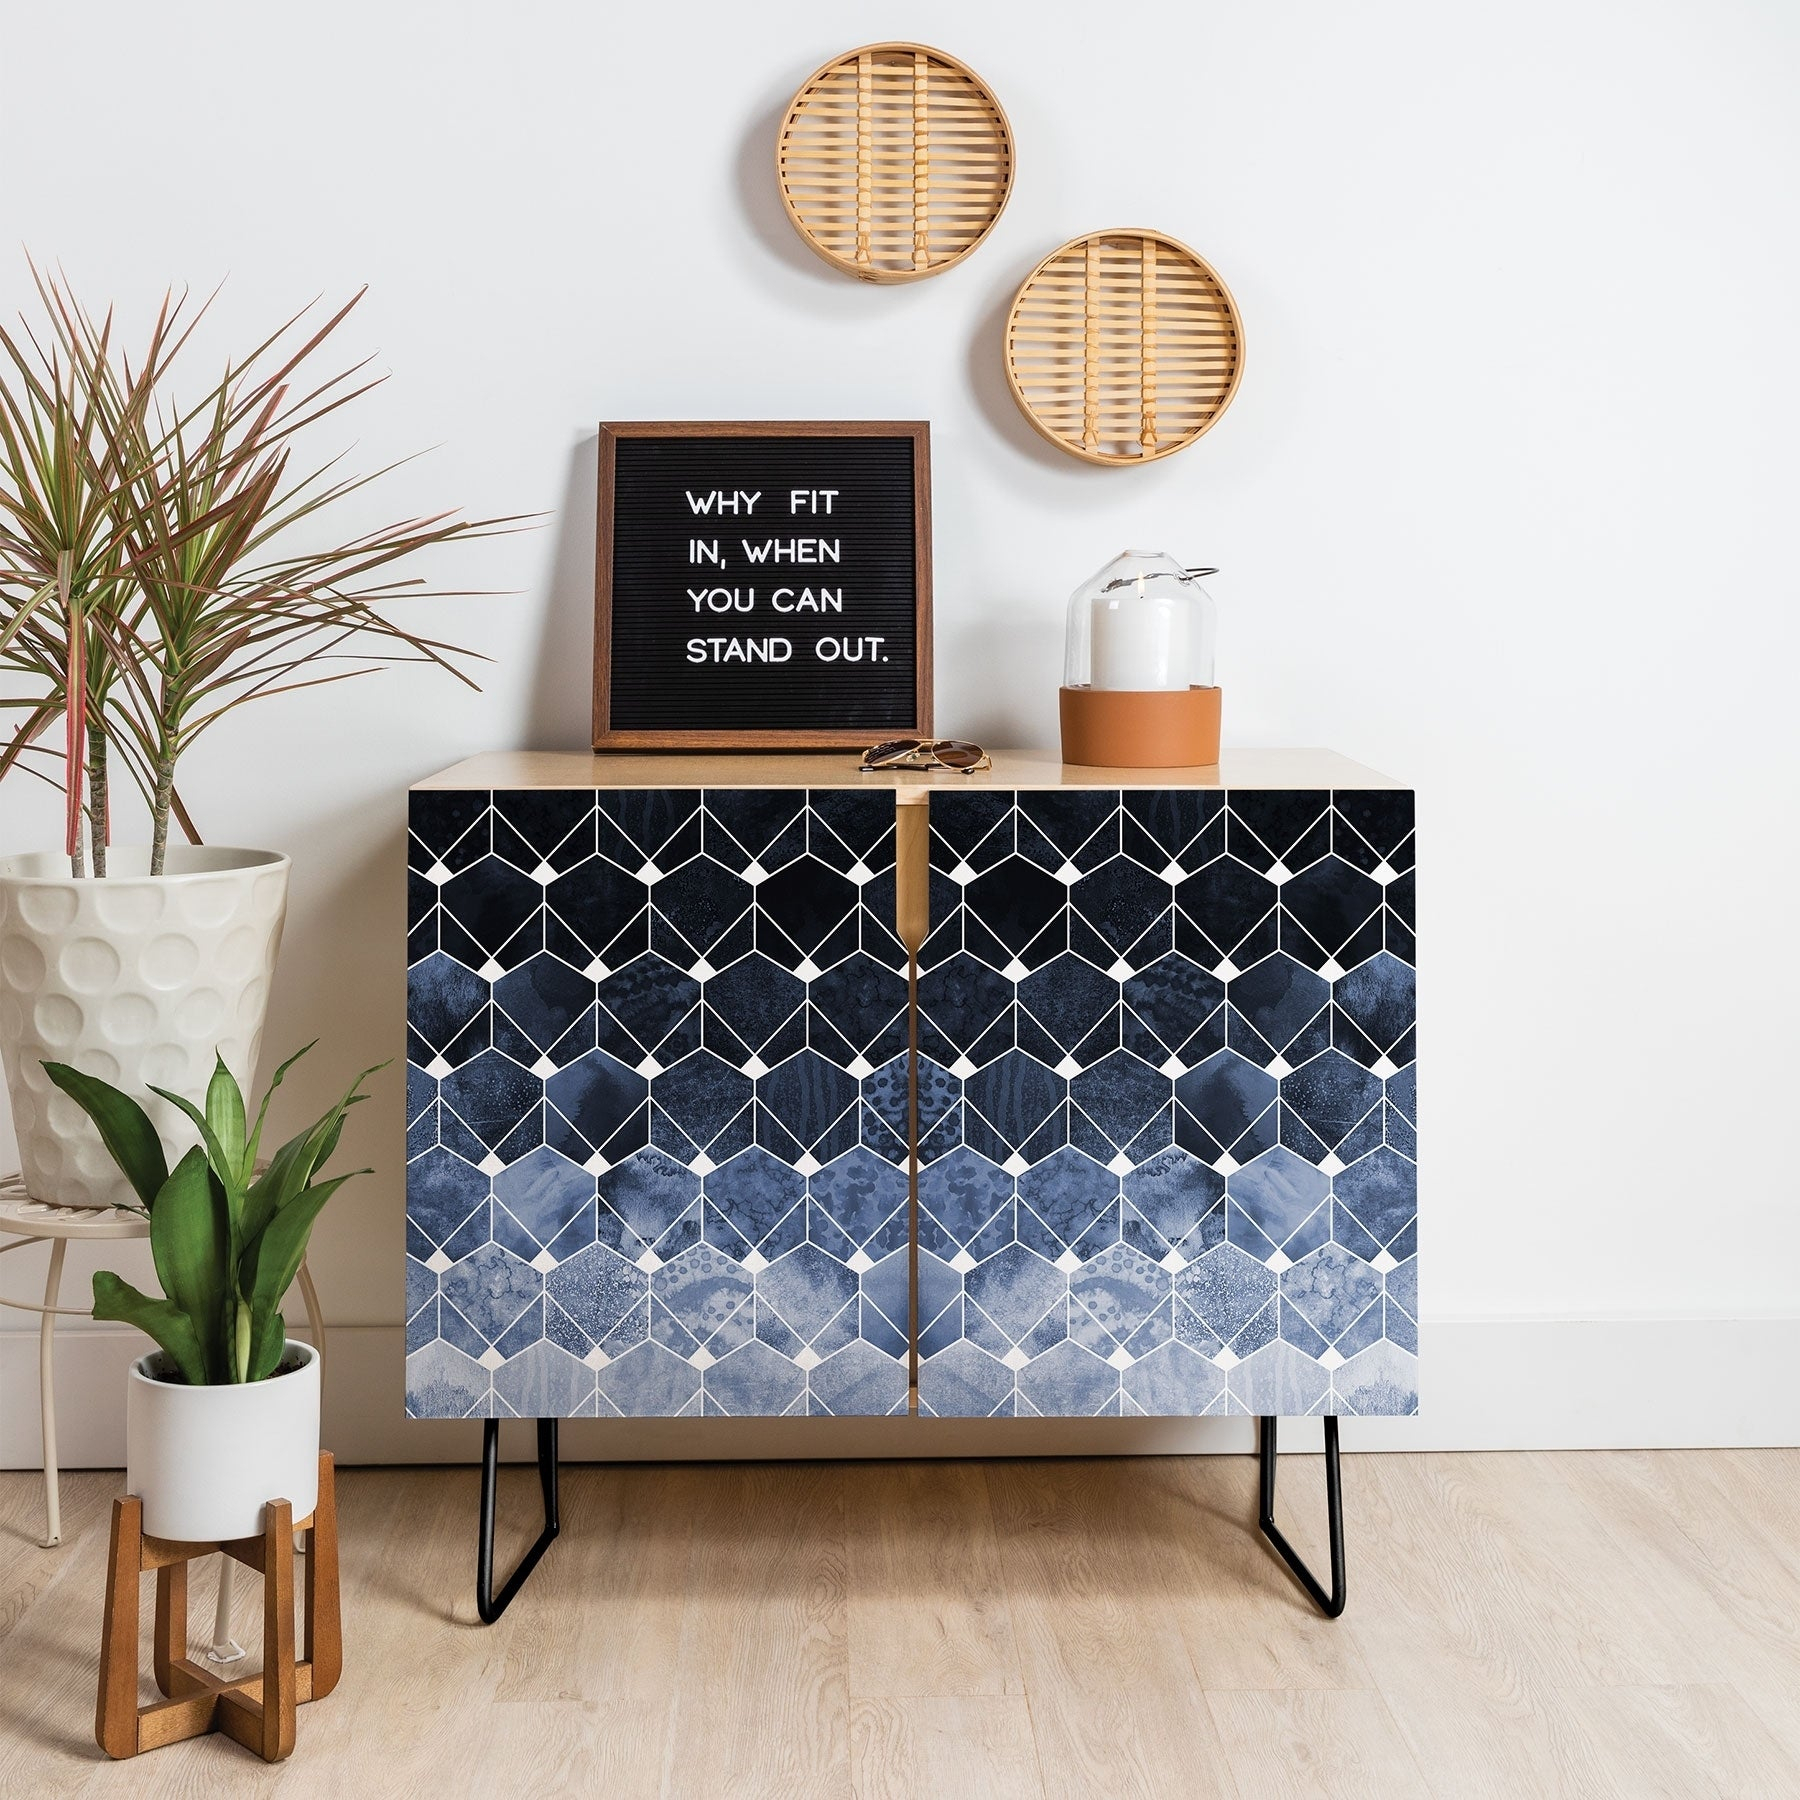 Deny Designs Blue Hexagons And Diamonds Credenza (Birch Or Walnut, 2 Leg Options) Within Line Geo Credenzas (View 7 of 30)